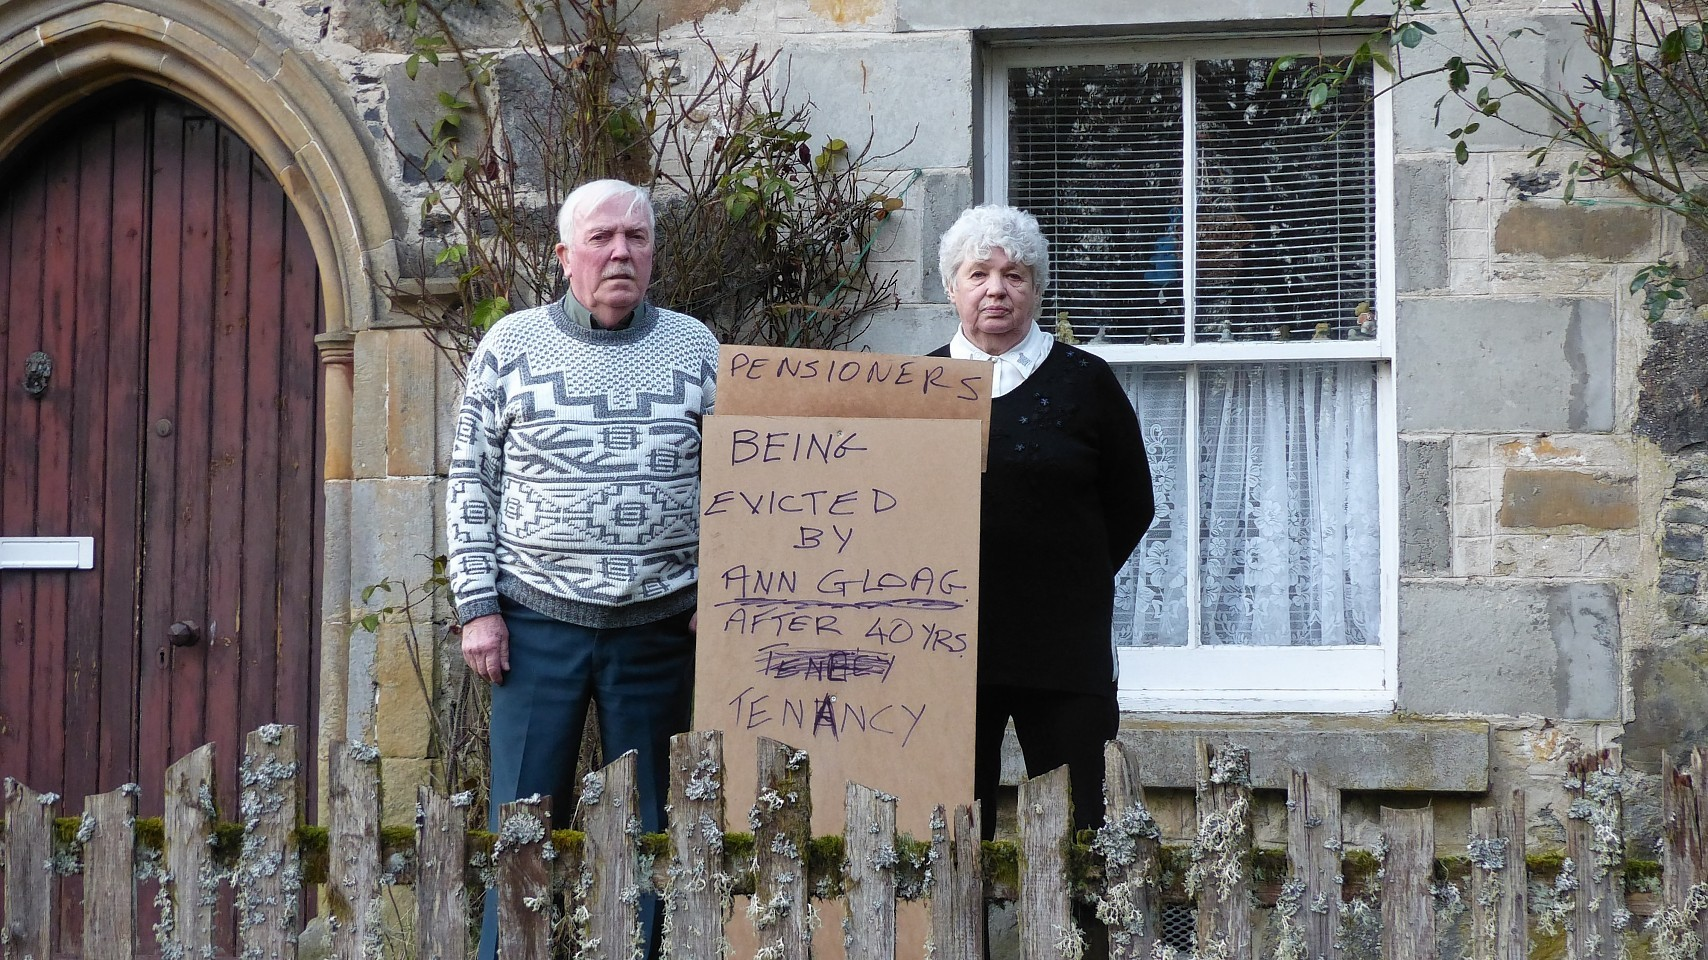 Jimmy and Lillie Bryan posted a sign about their eviction outside their home